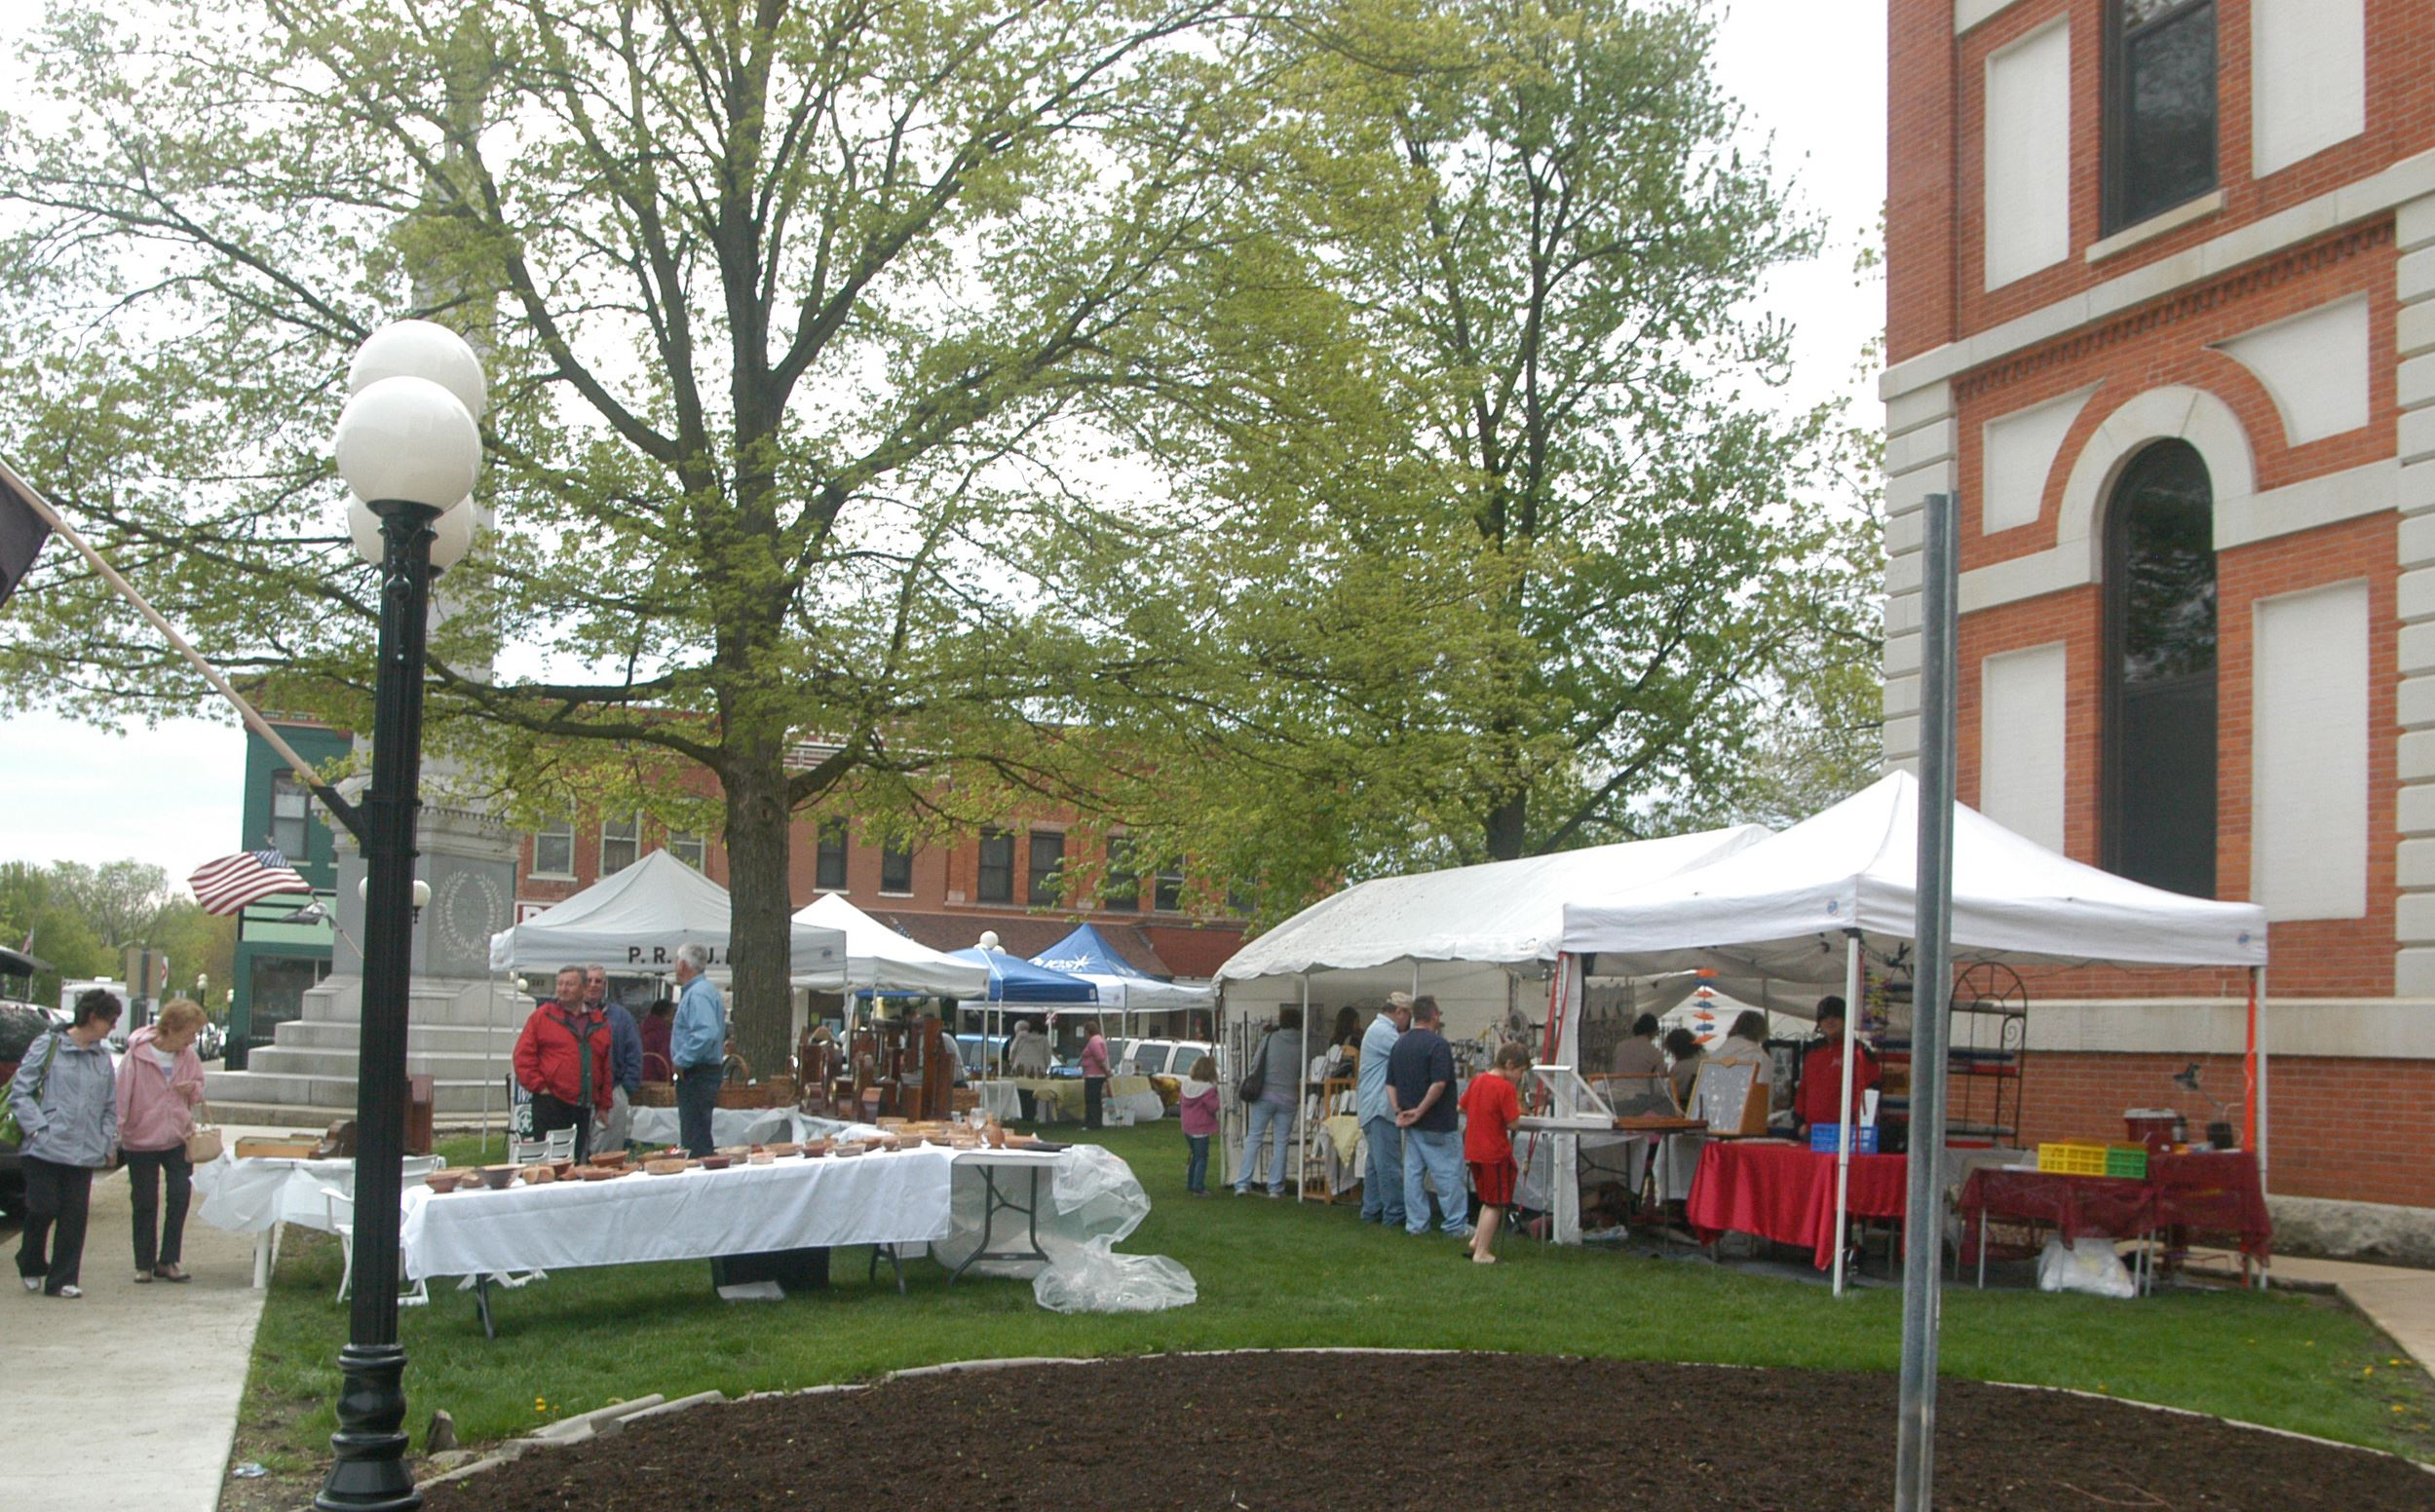 People stroll through Pontiac and browse booths of food and homemade wares.